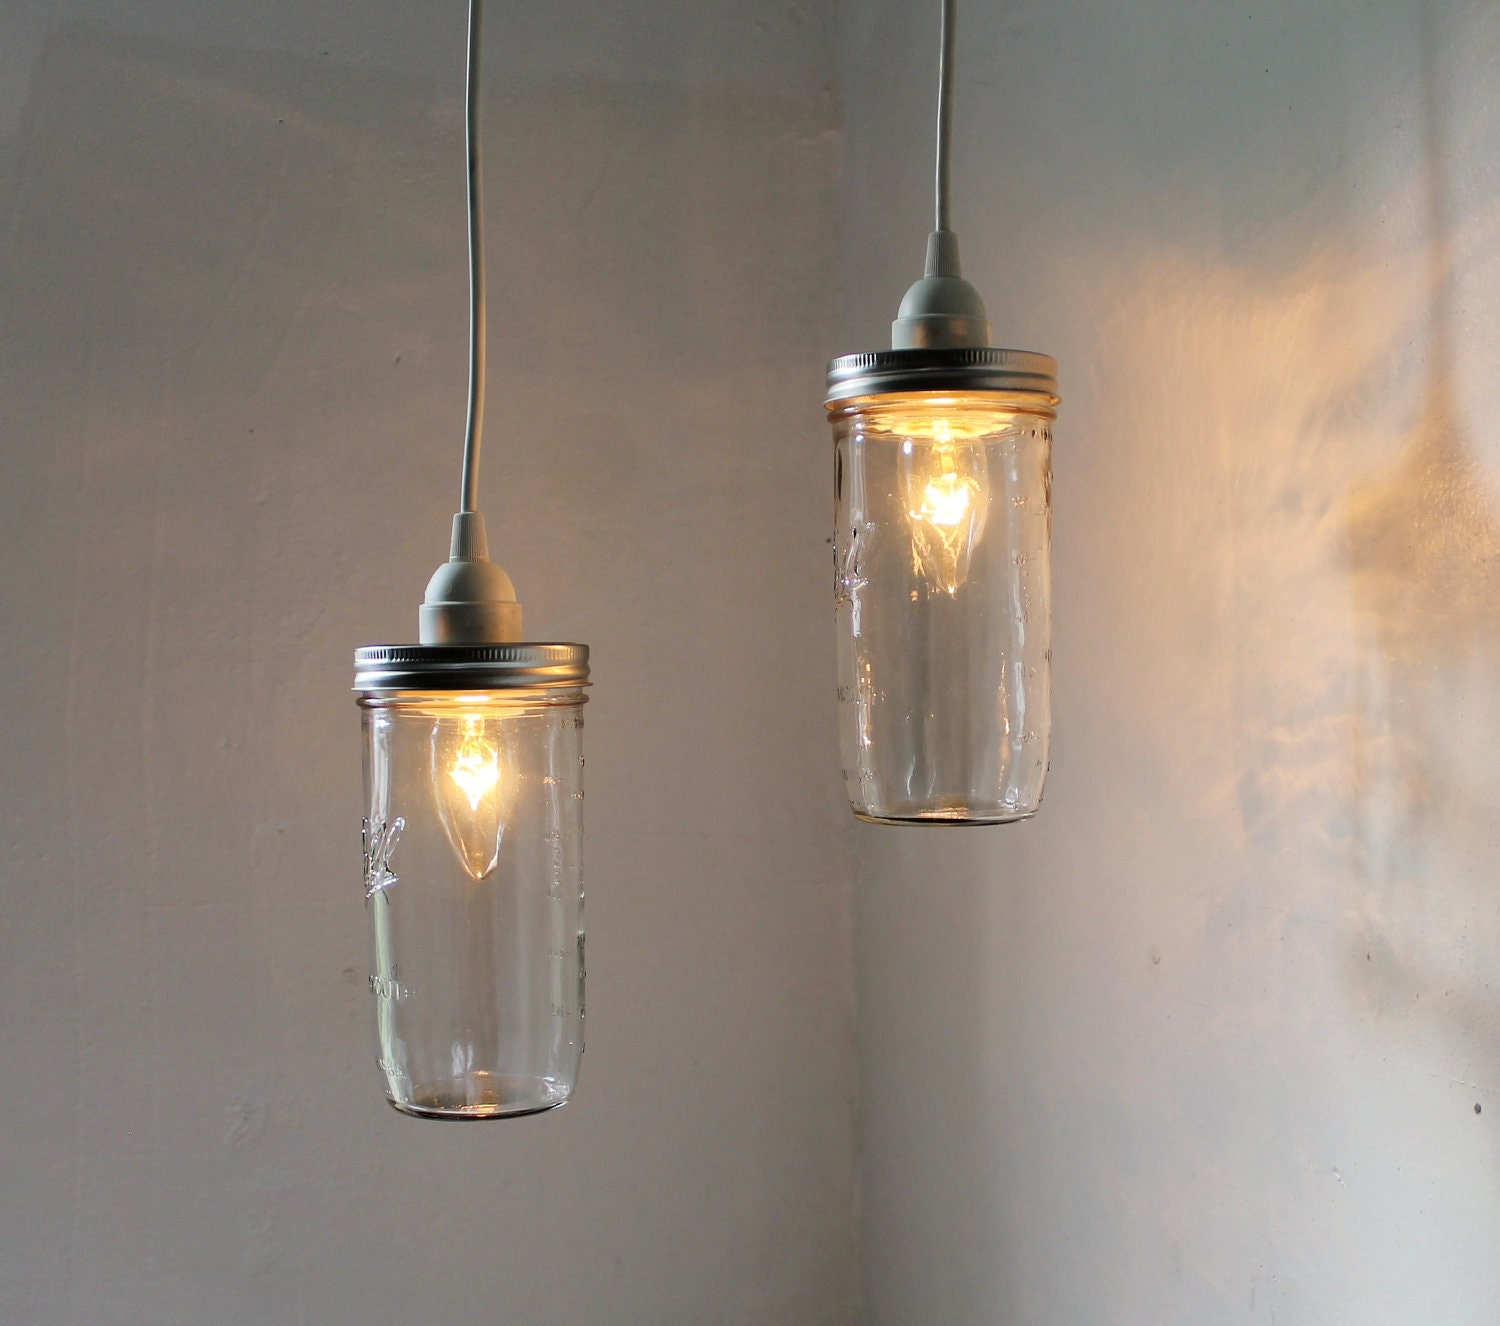 Modern Rustic Light Fixtures 1500 x 1326